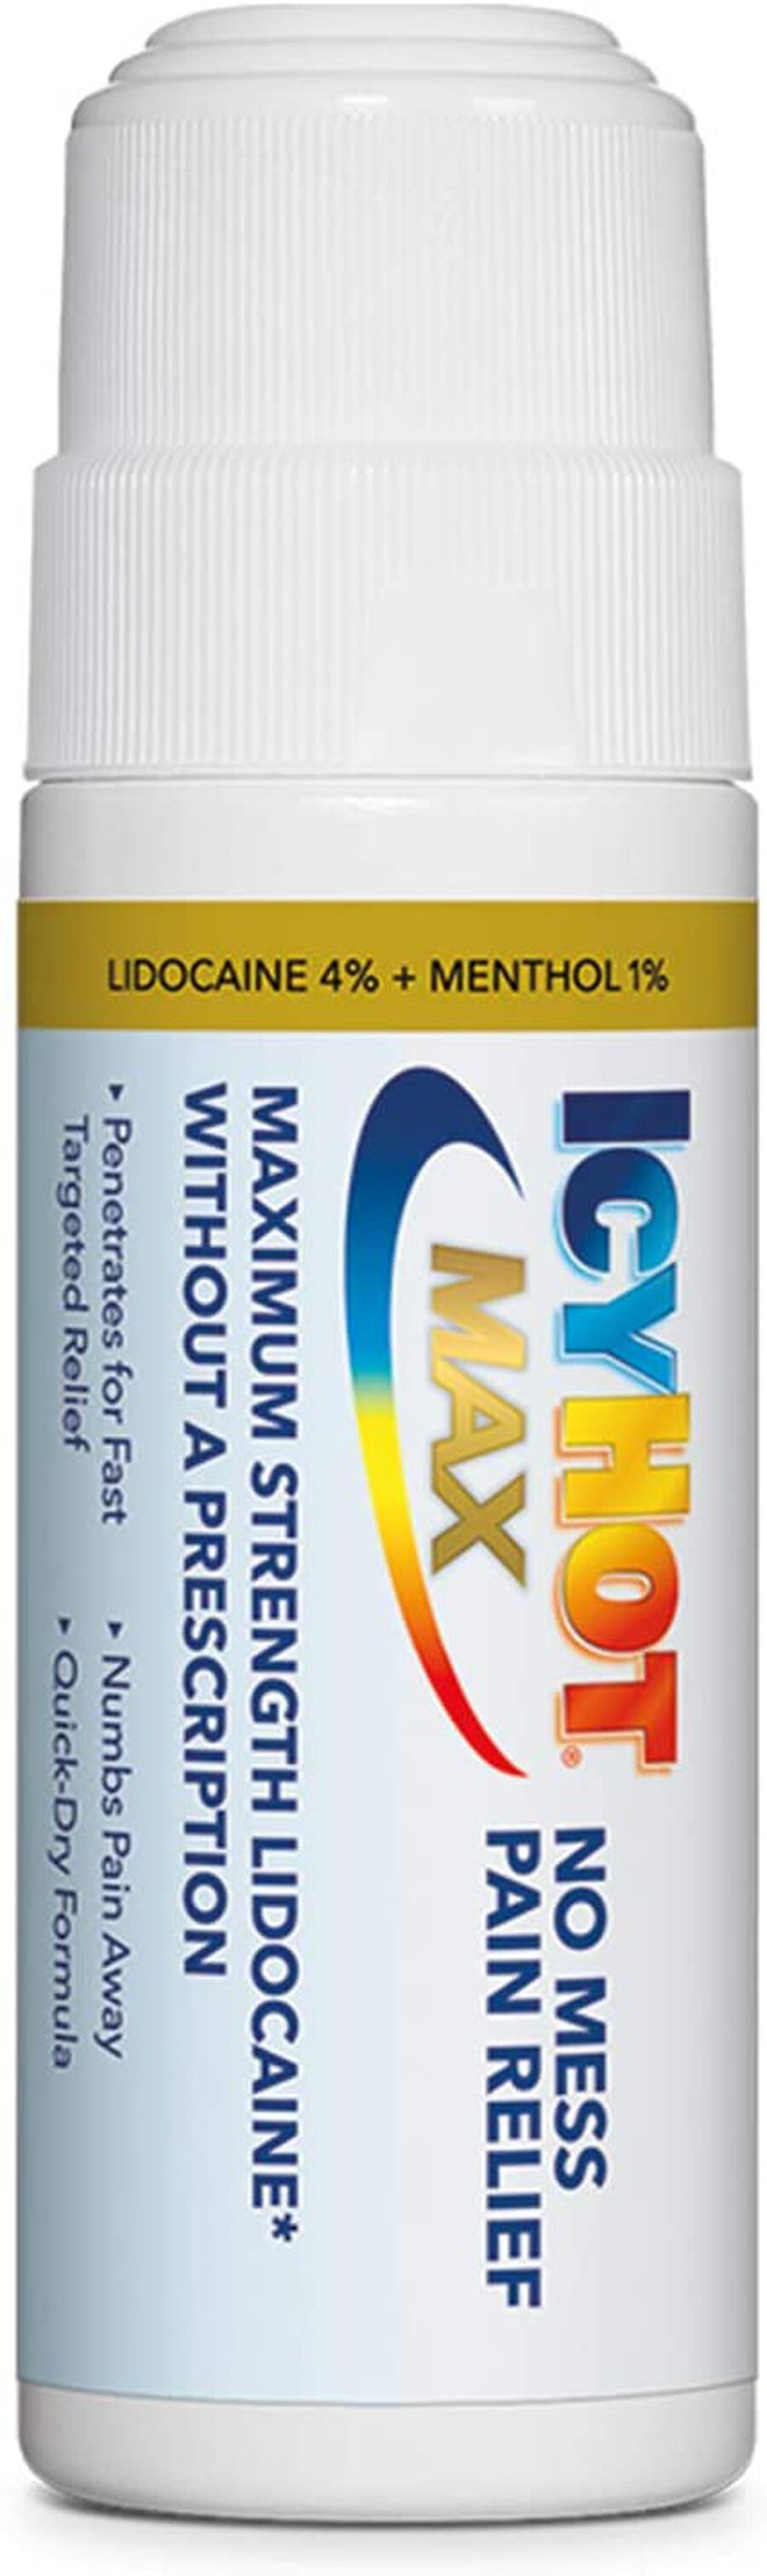 Icy Hot Max With Lidocaine + Menthol, Roll-On, 2.5 oz, , large image number 3